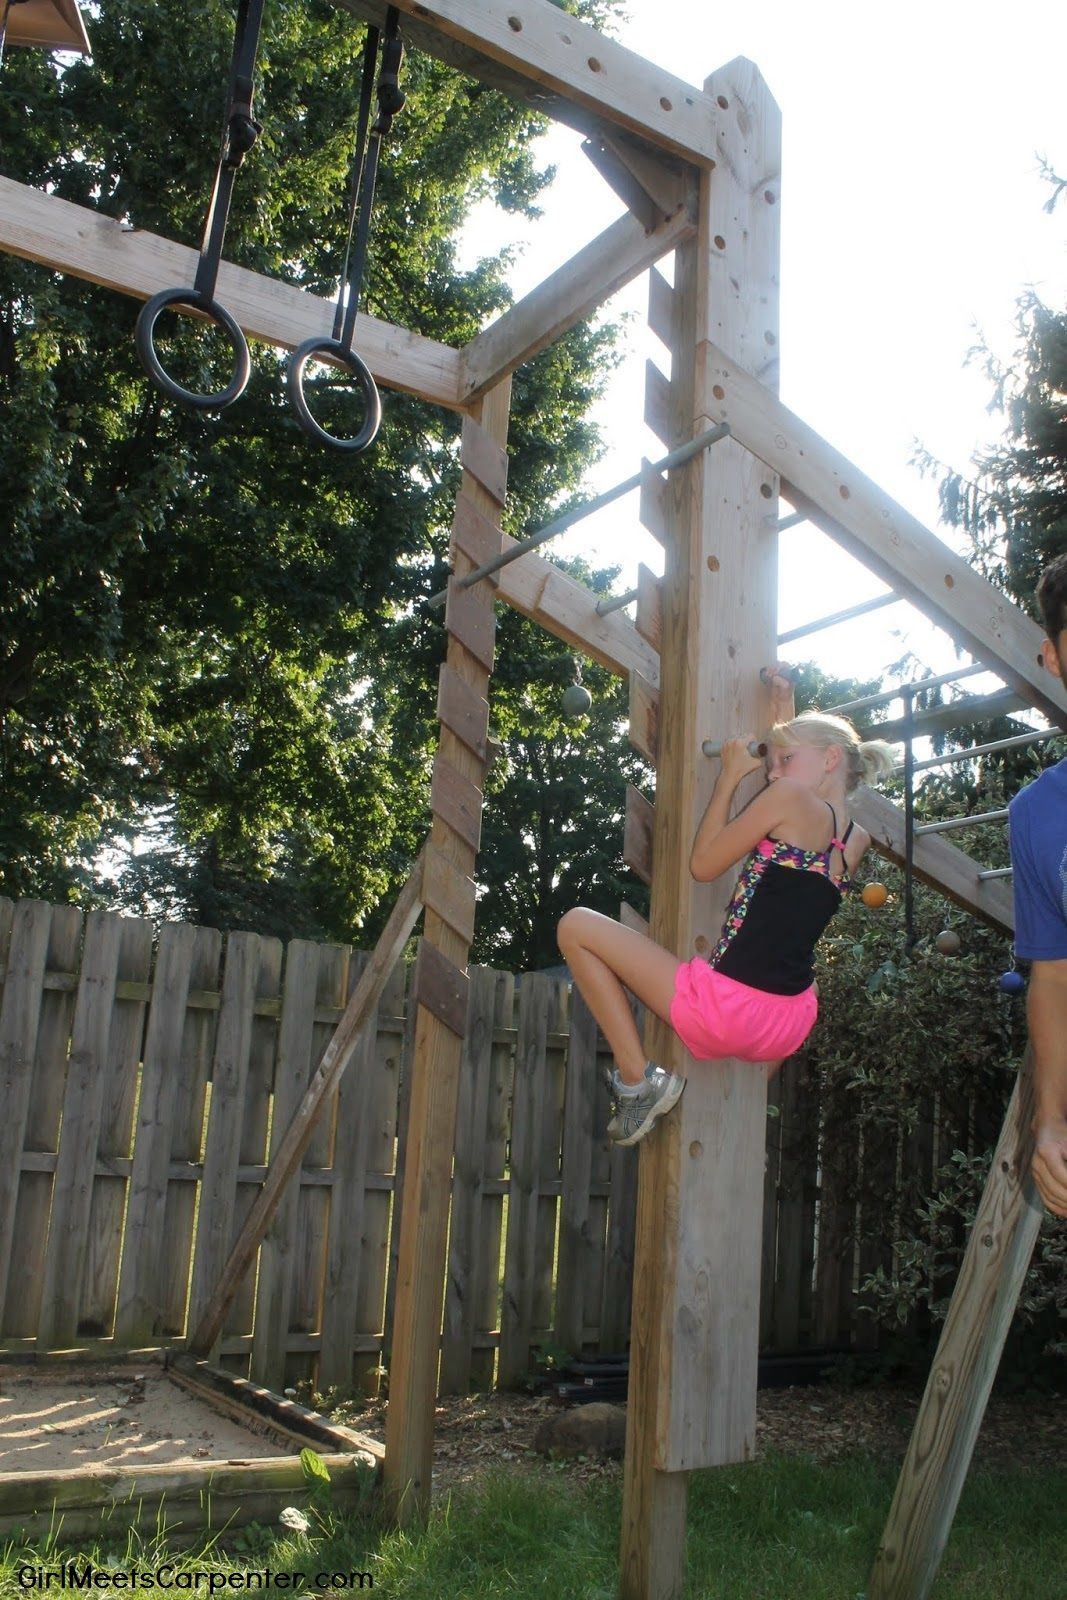 Diy Peg Wall For Kids And Adults Backyard Ninja Obstacle Course By